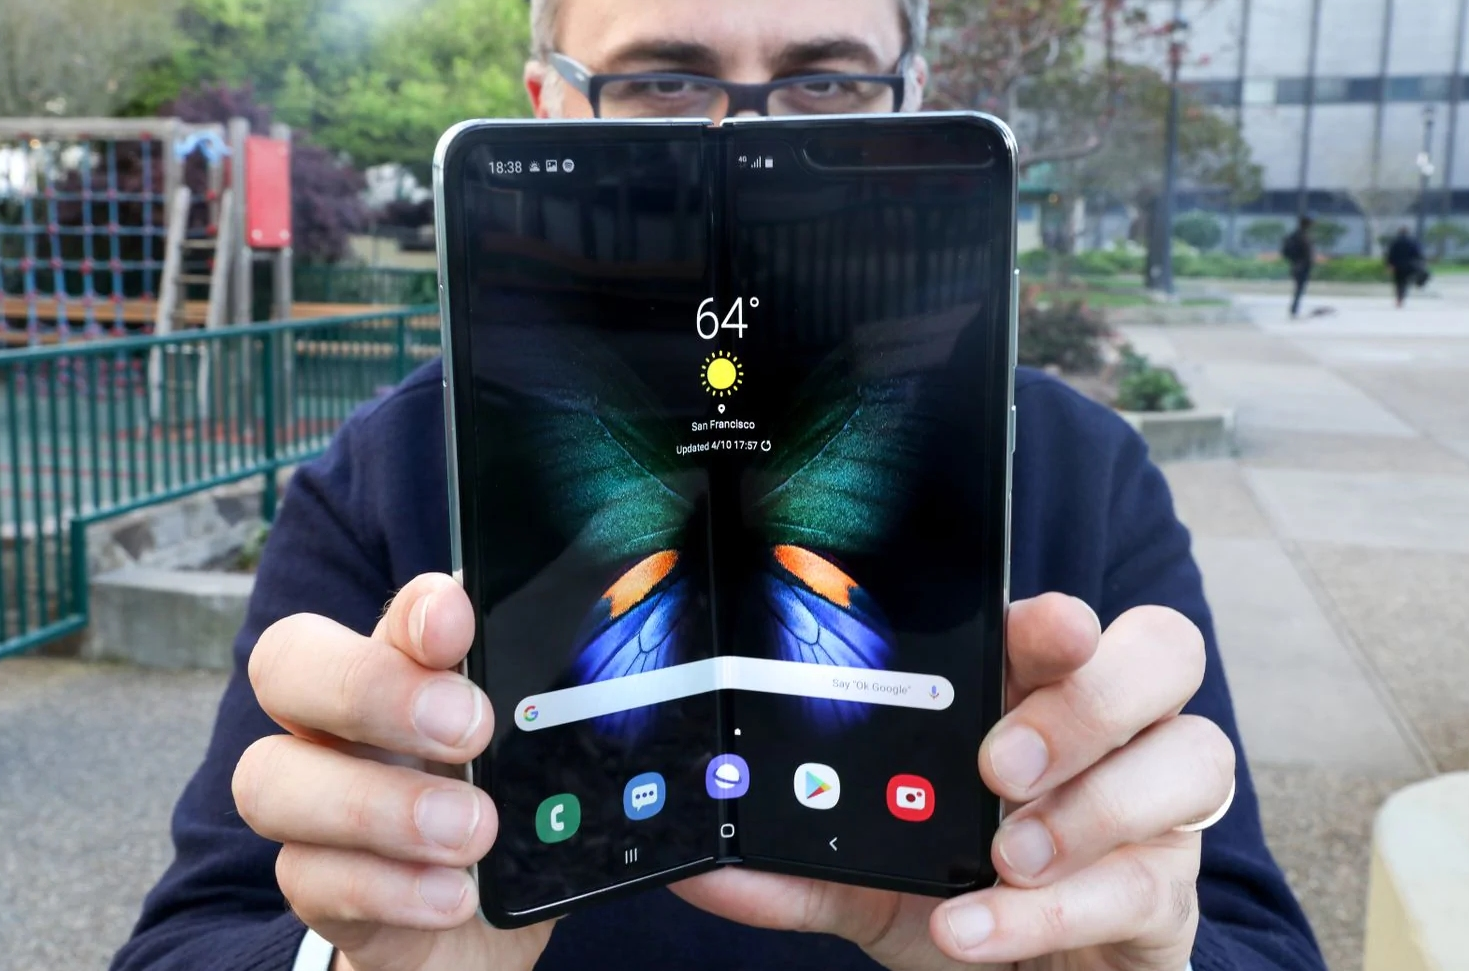 Samsung Galaxy Fold hands-on round-up: Optimism prevails